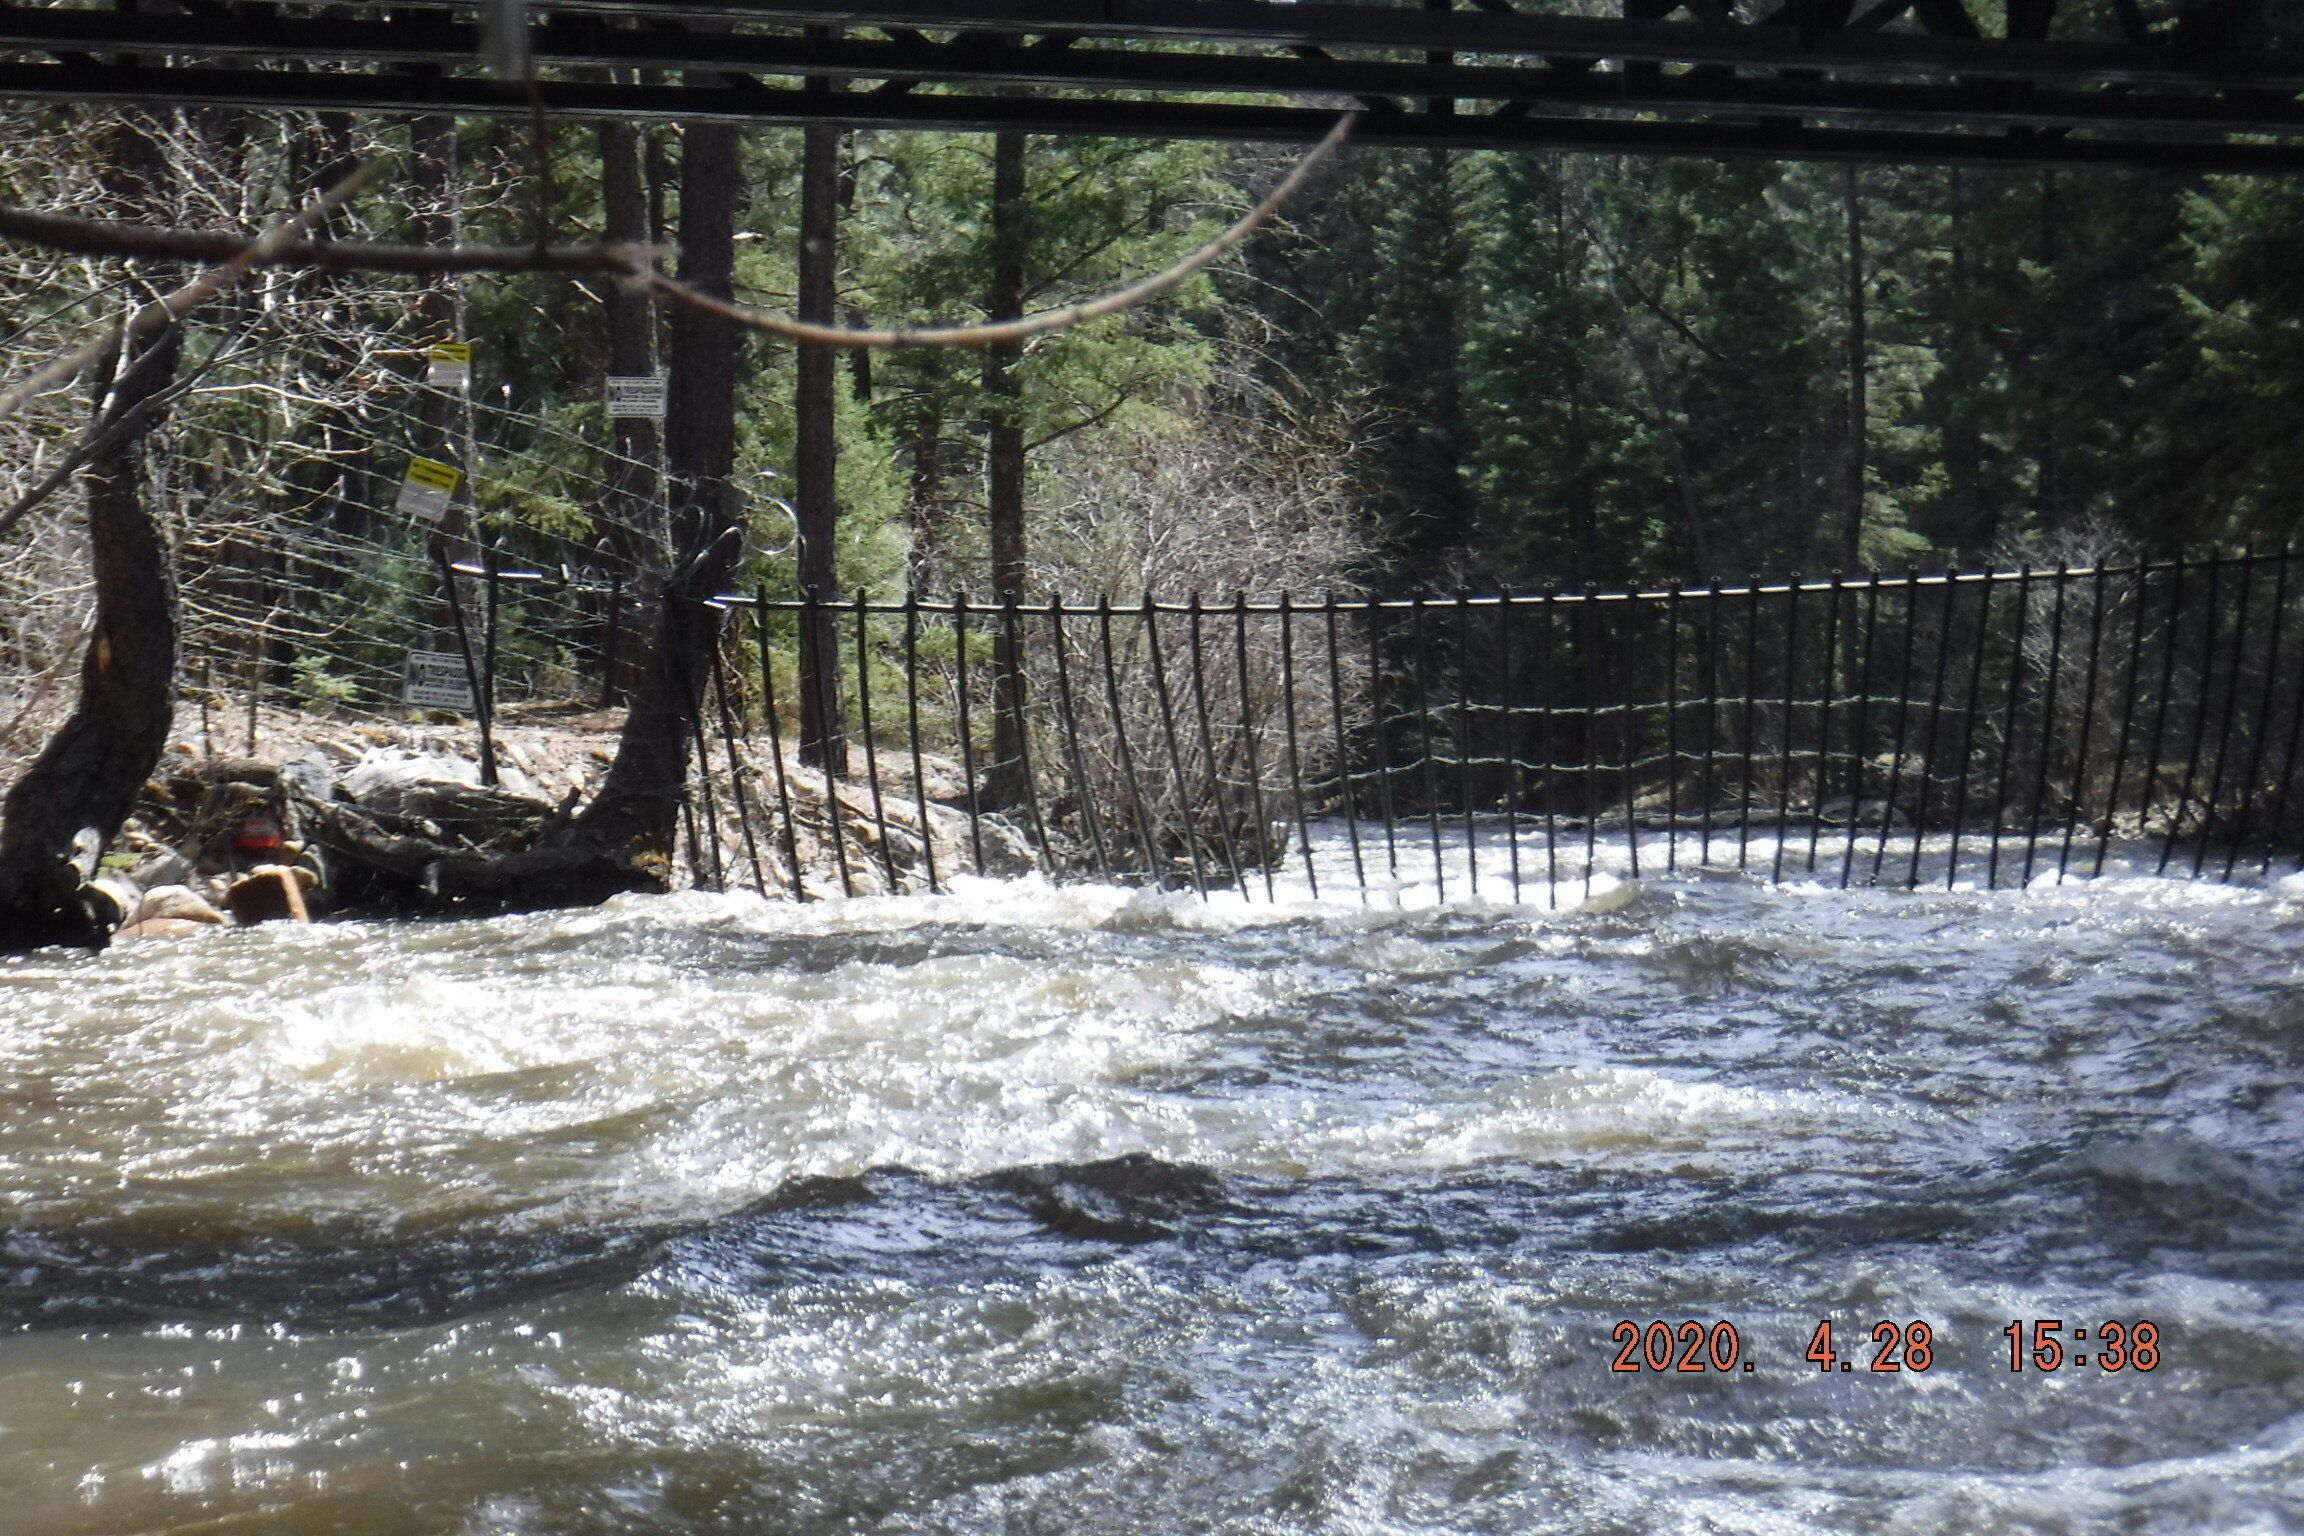 """Fencing and razor wire are strung across the Pecos River on the Hersh property. """"No Trespassing"""" signs hang on nearby trees."""